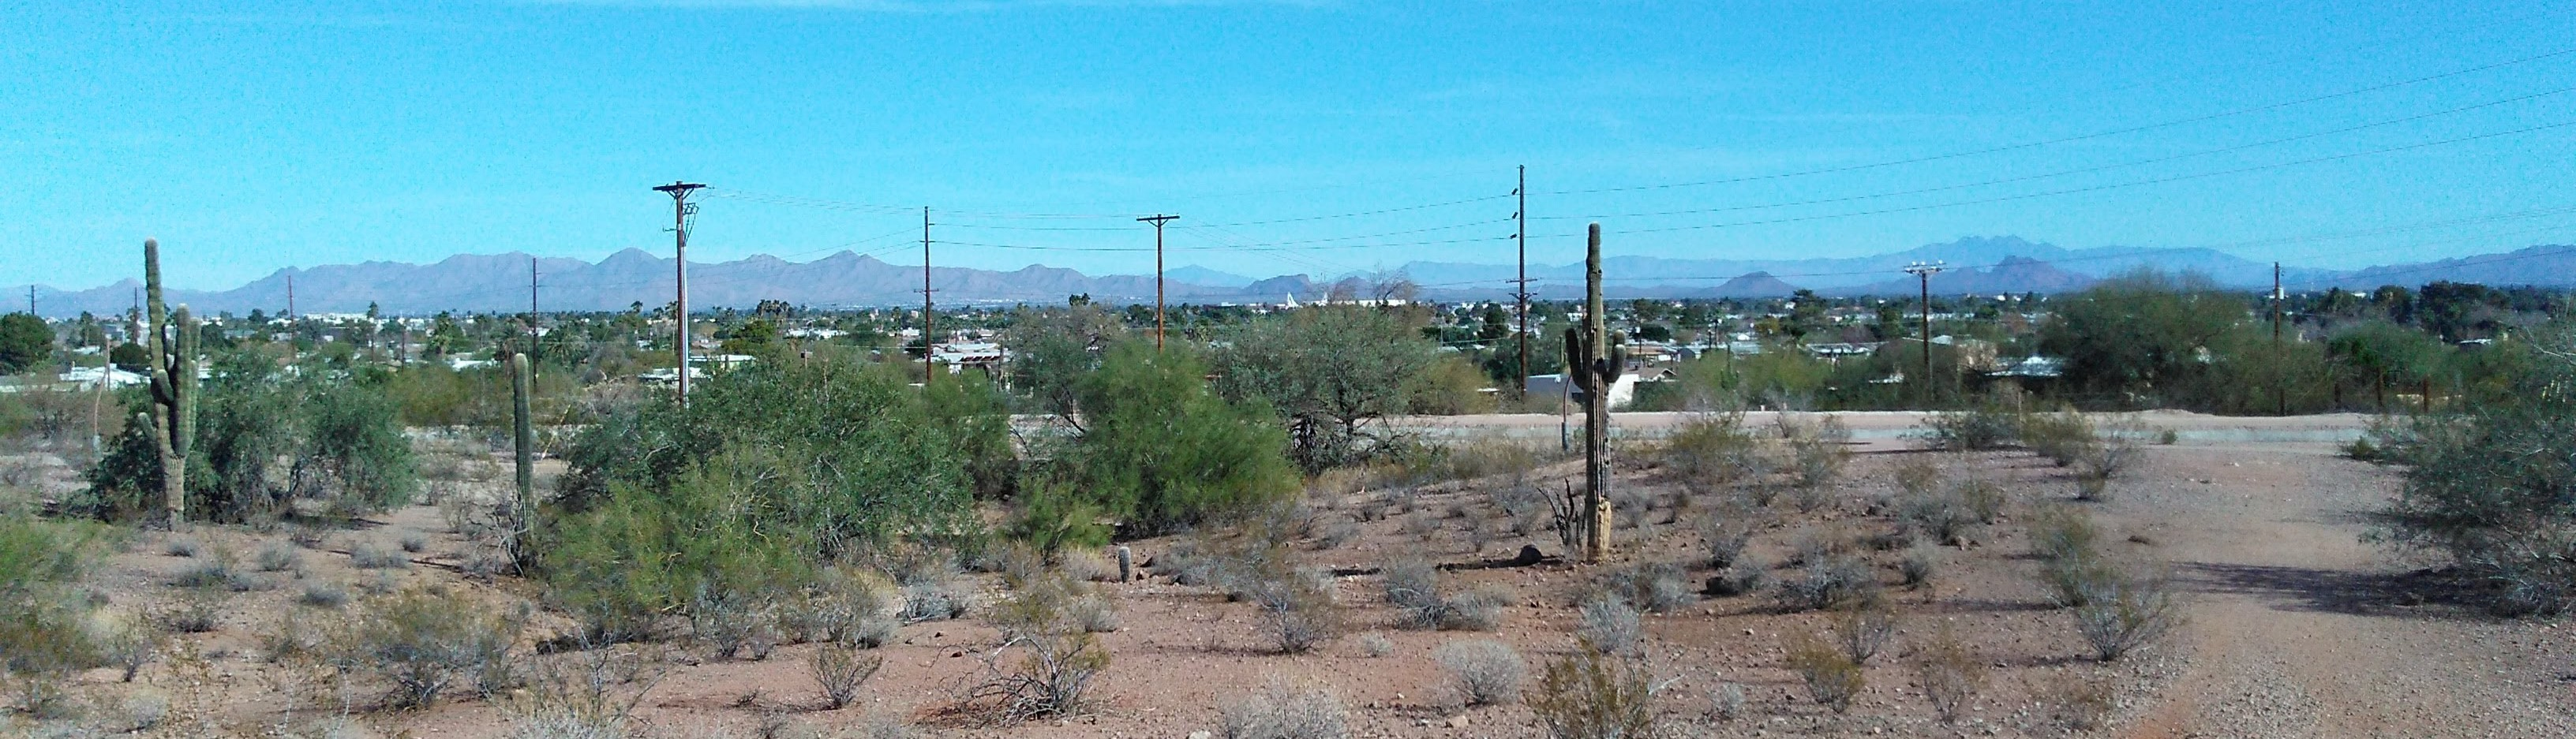 Mountains and cactus. Typical Arizona view.